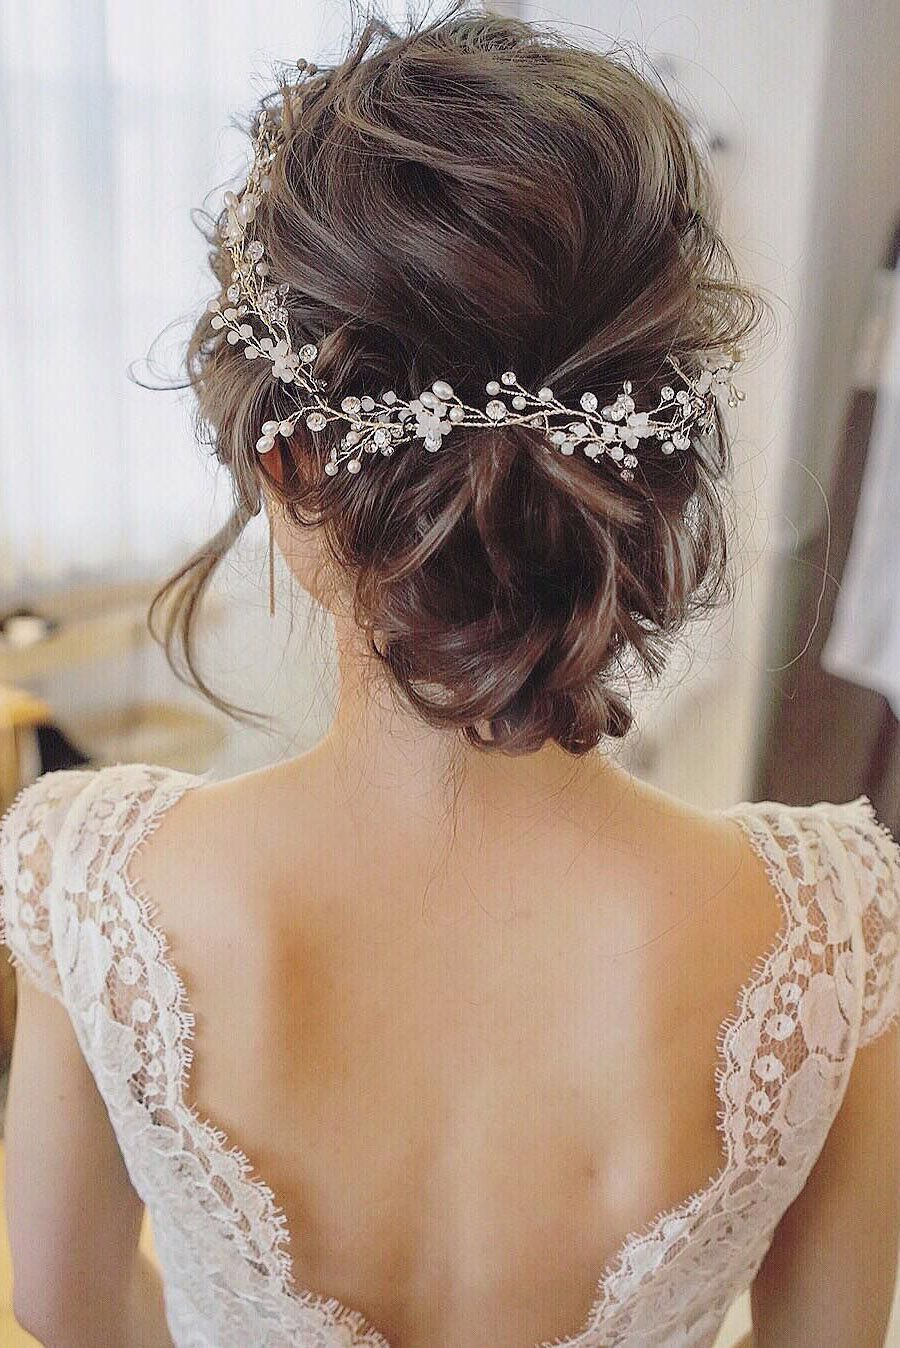 30 Wedding Hairstyles for Every Length